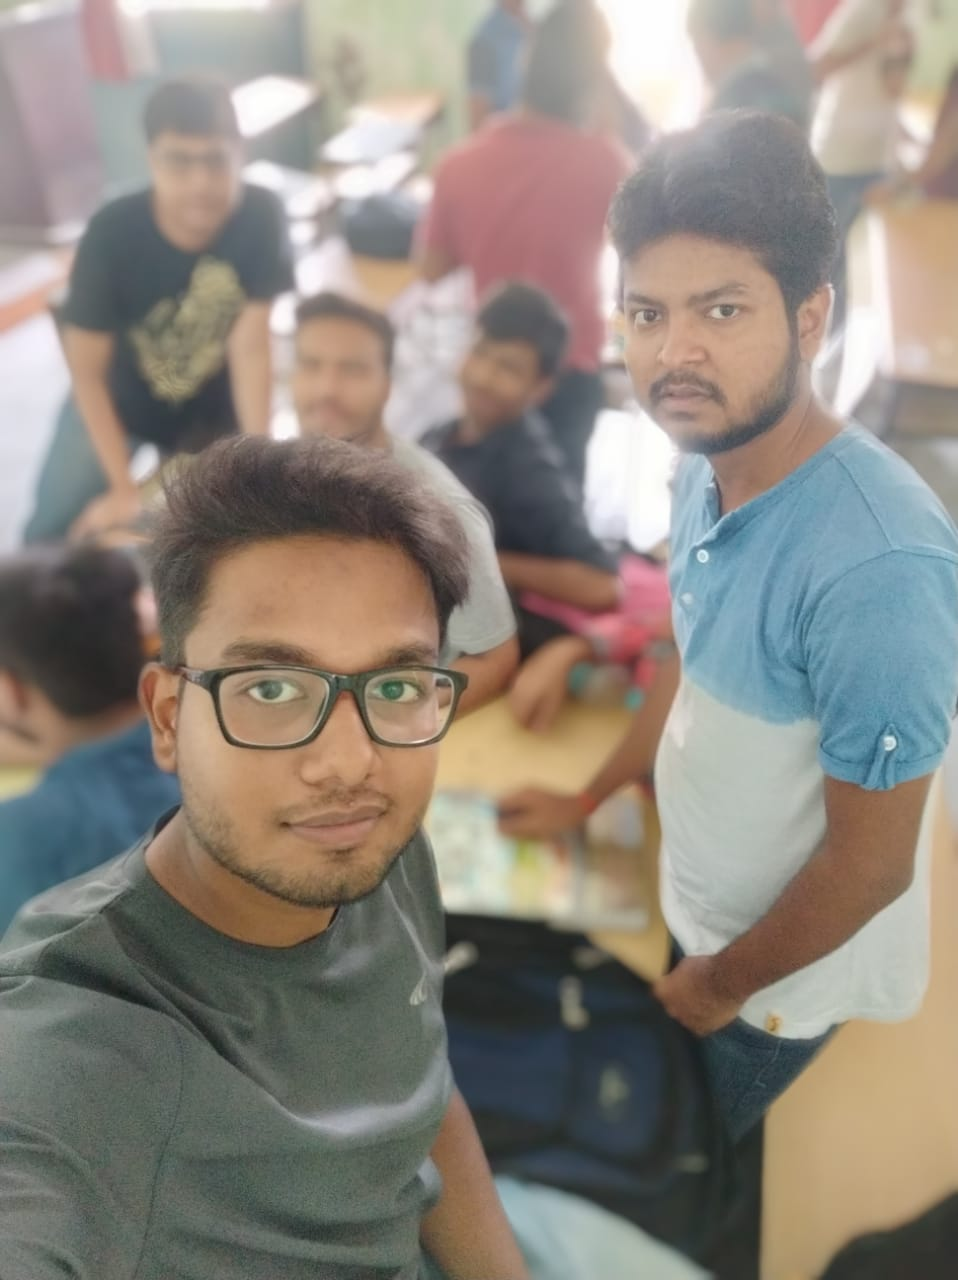 A selfie picture showing me with my several friends - Redmi Note 5 Pro Front Camera